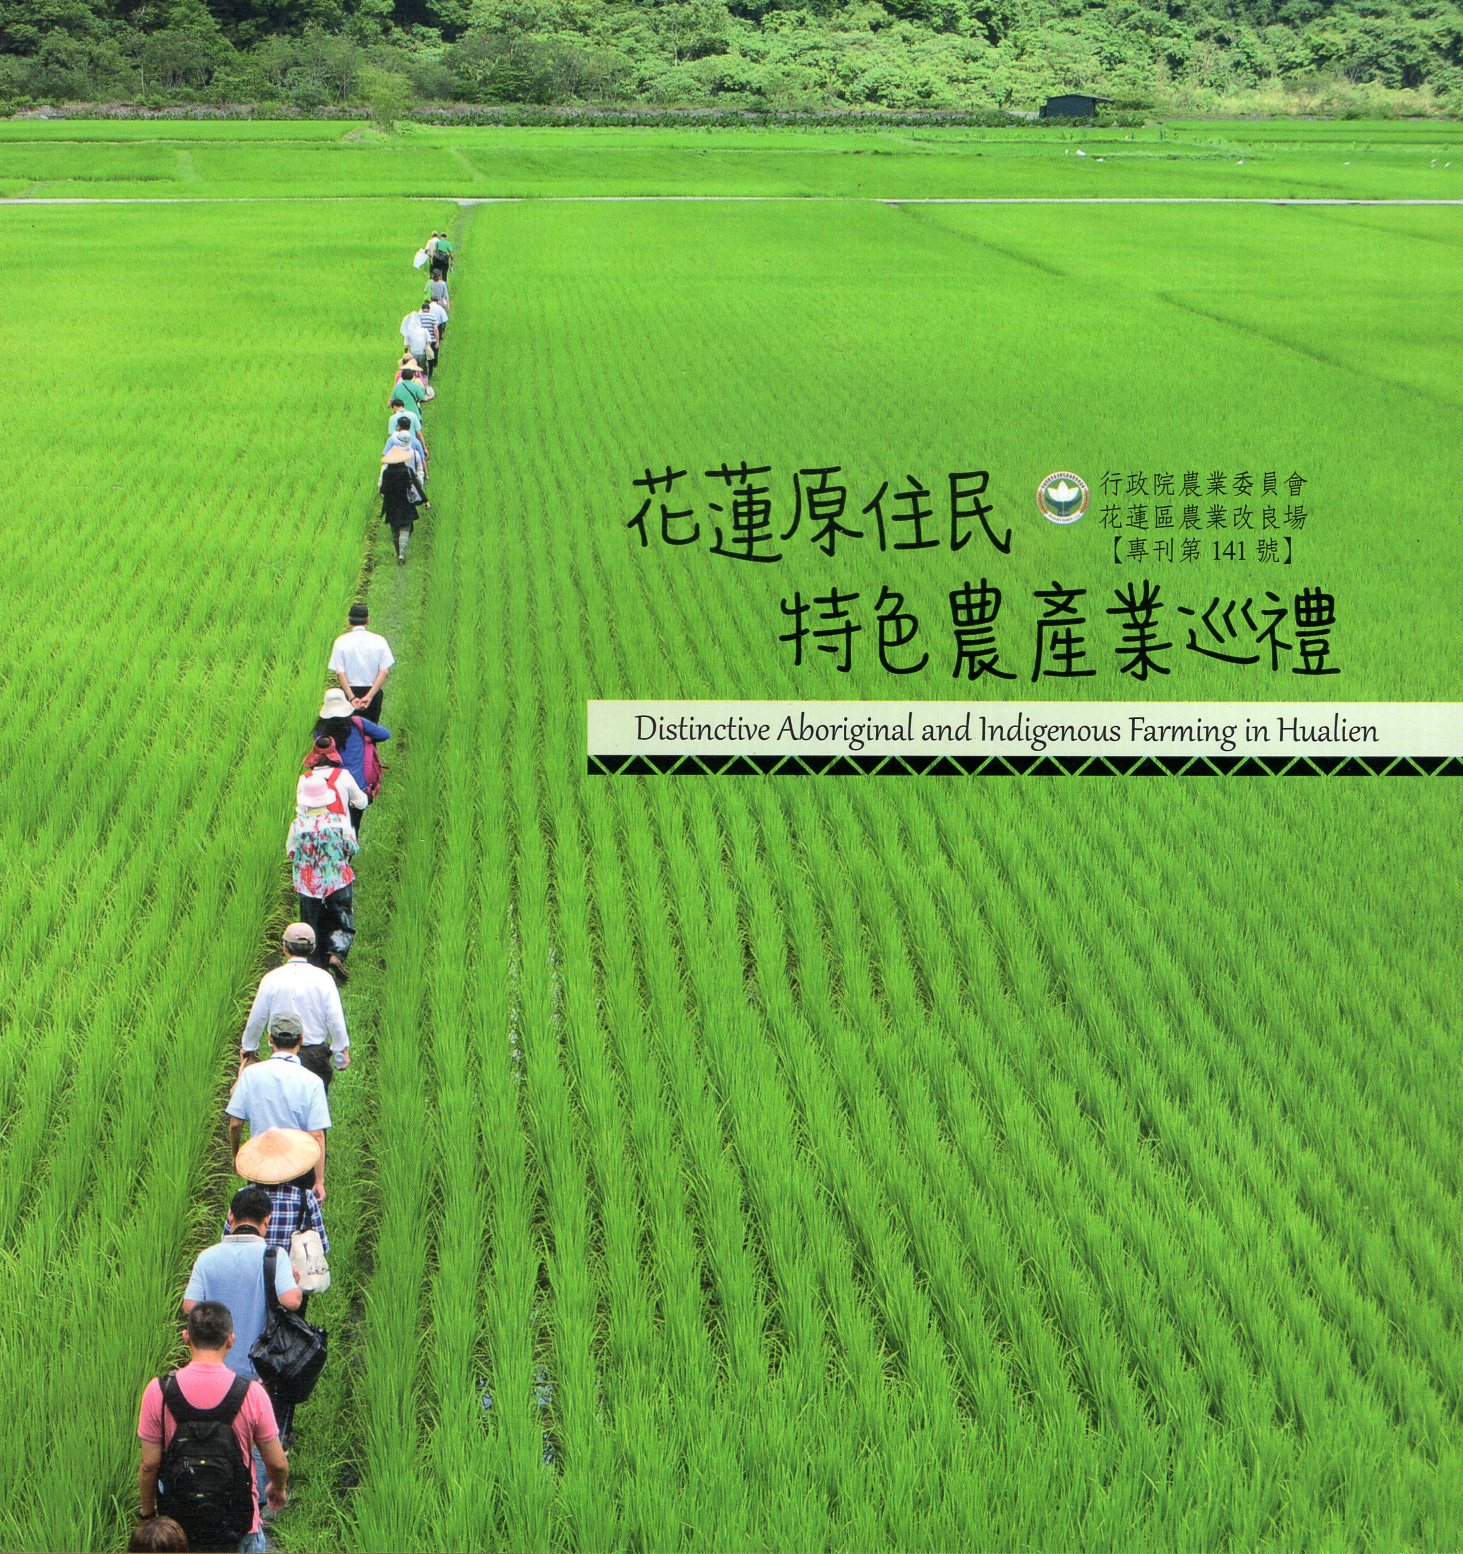 Distinctive Aboriginal and Indigenous Farming in Hualien